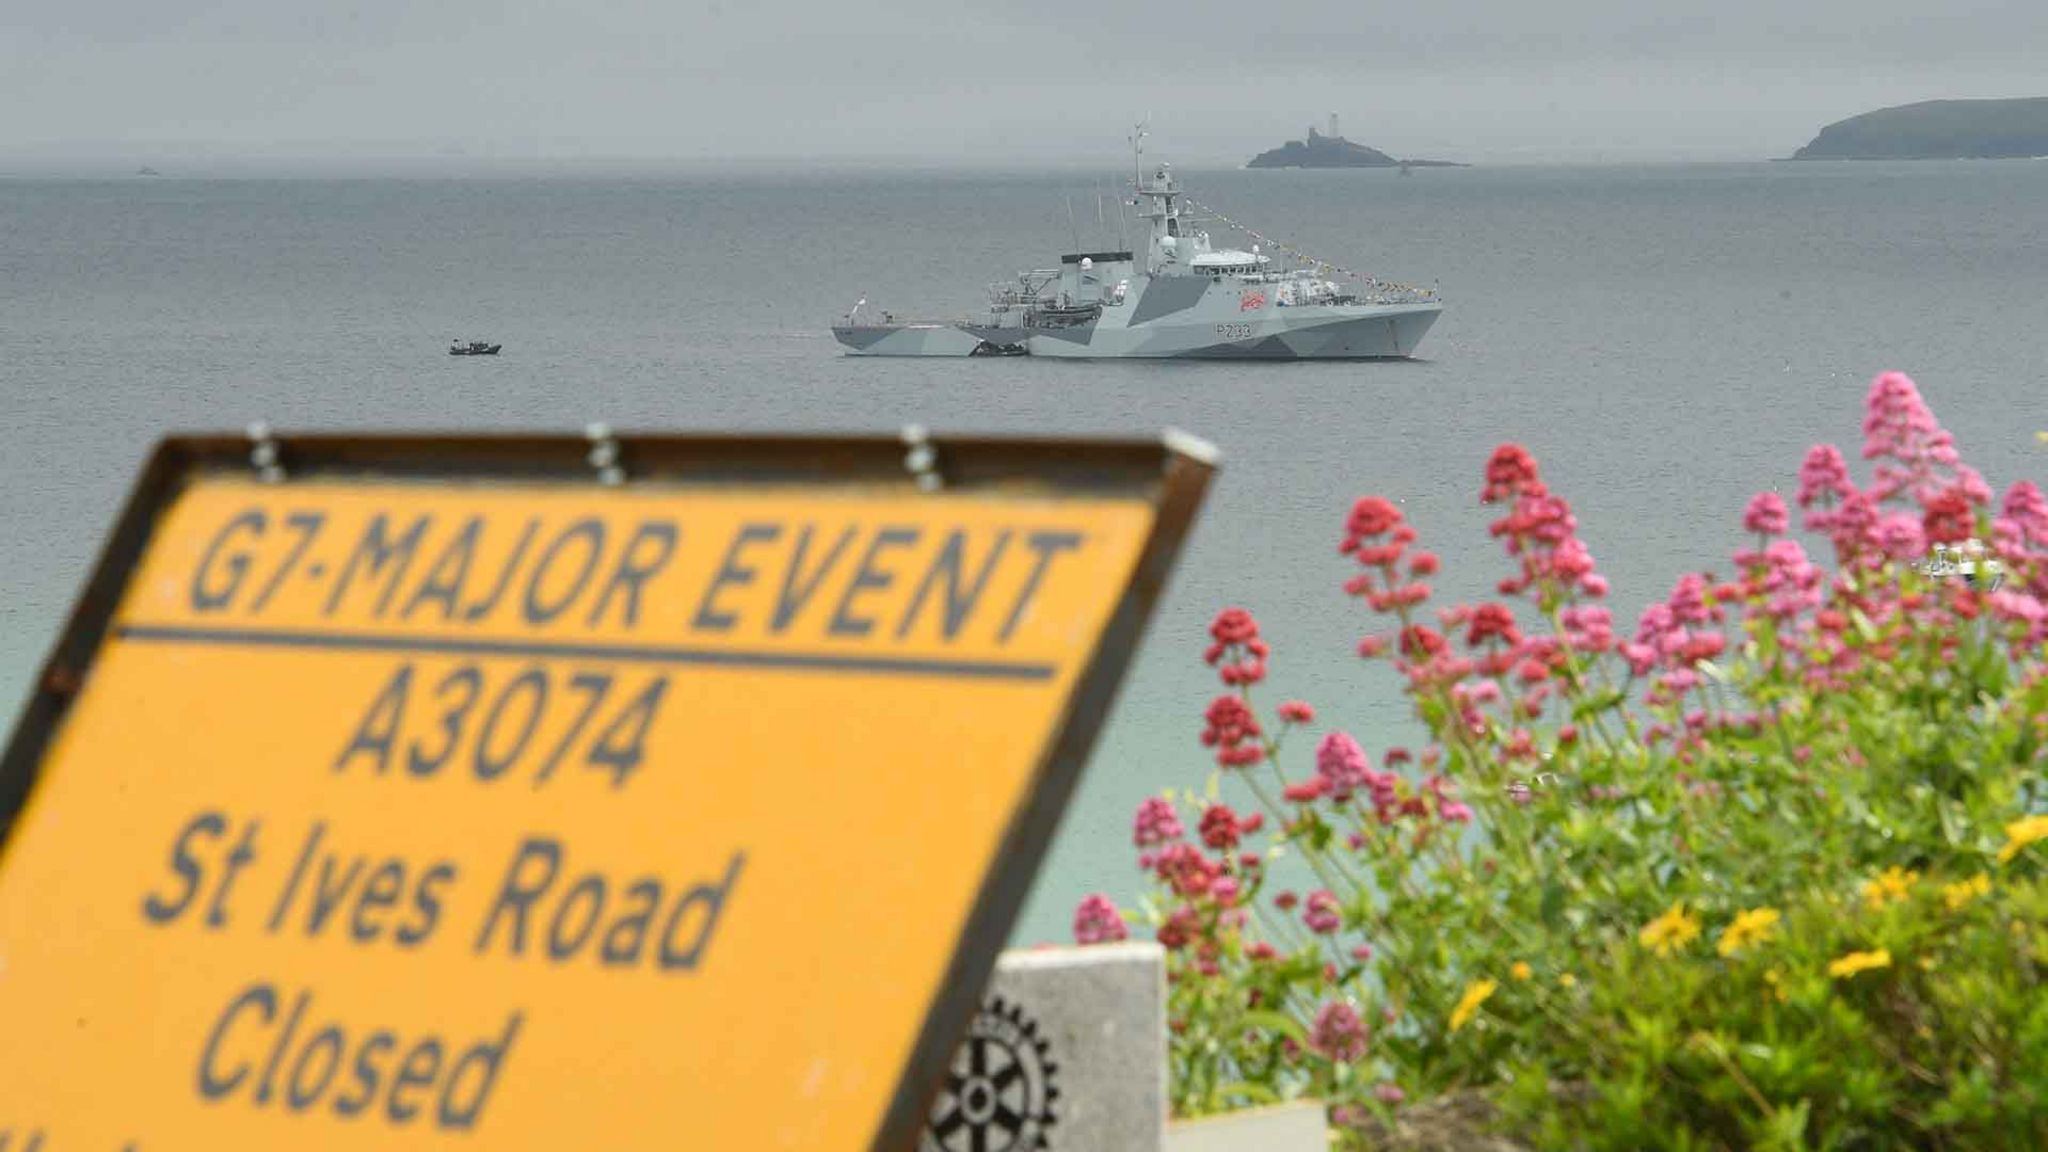 """Road sign says """"G7 major event"""" - behind it, a Navy cruiser in the sea off Carbis Bay"""